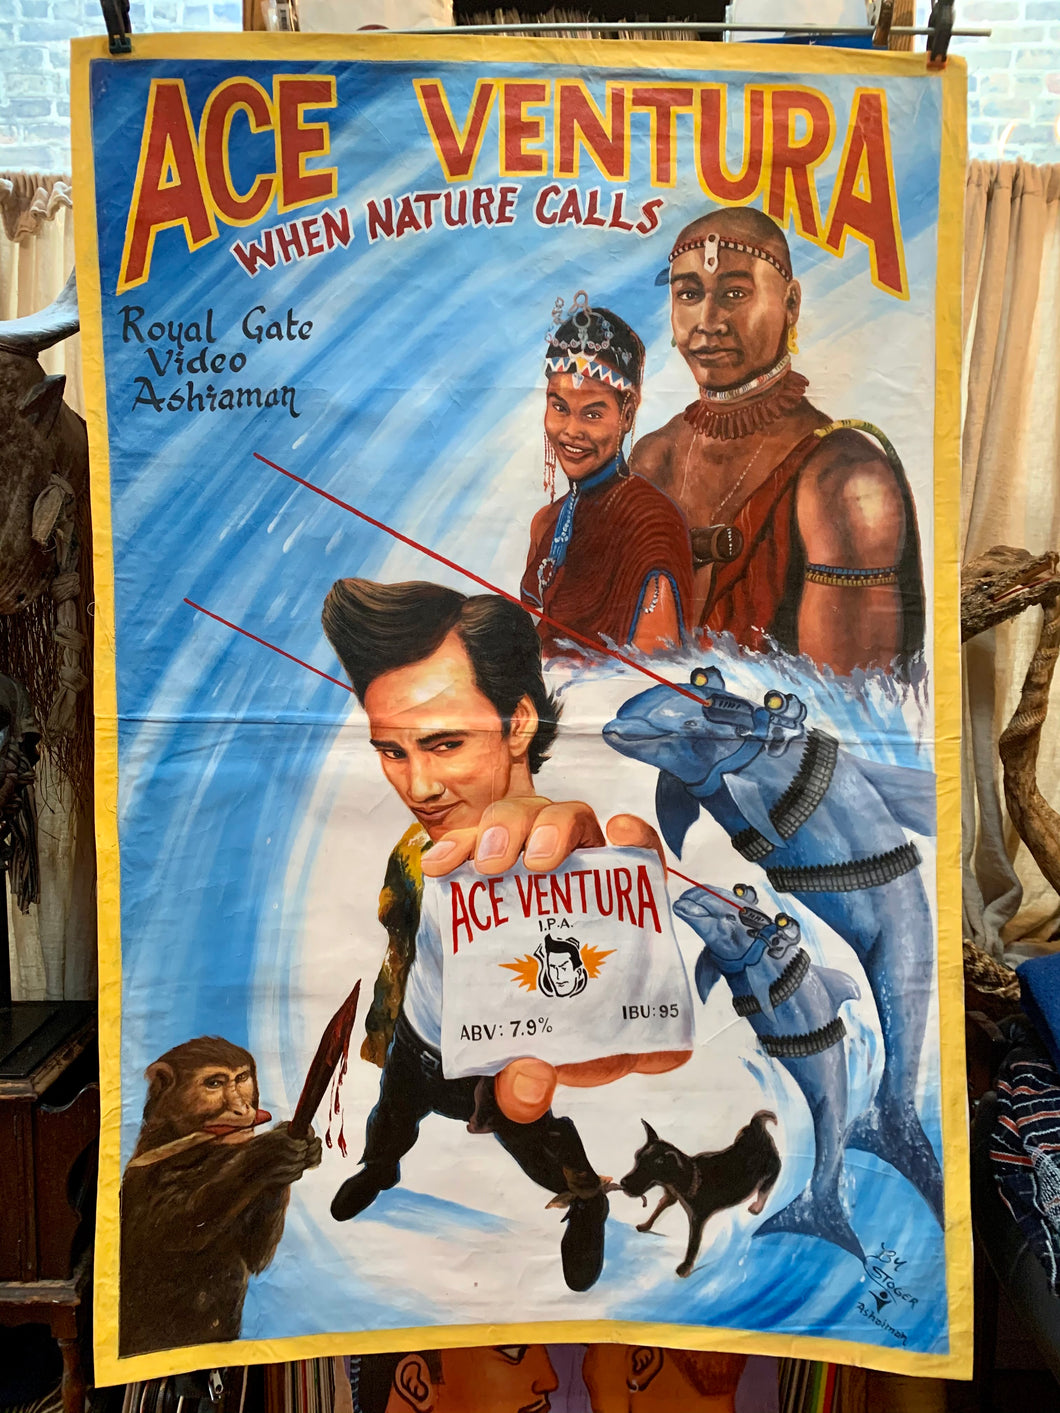 Ace Ventura: When Nature Calls - Original Painting by Stoger